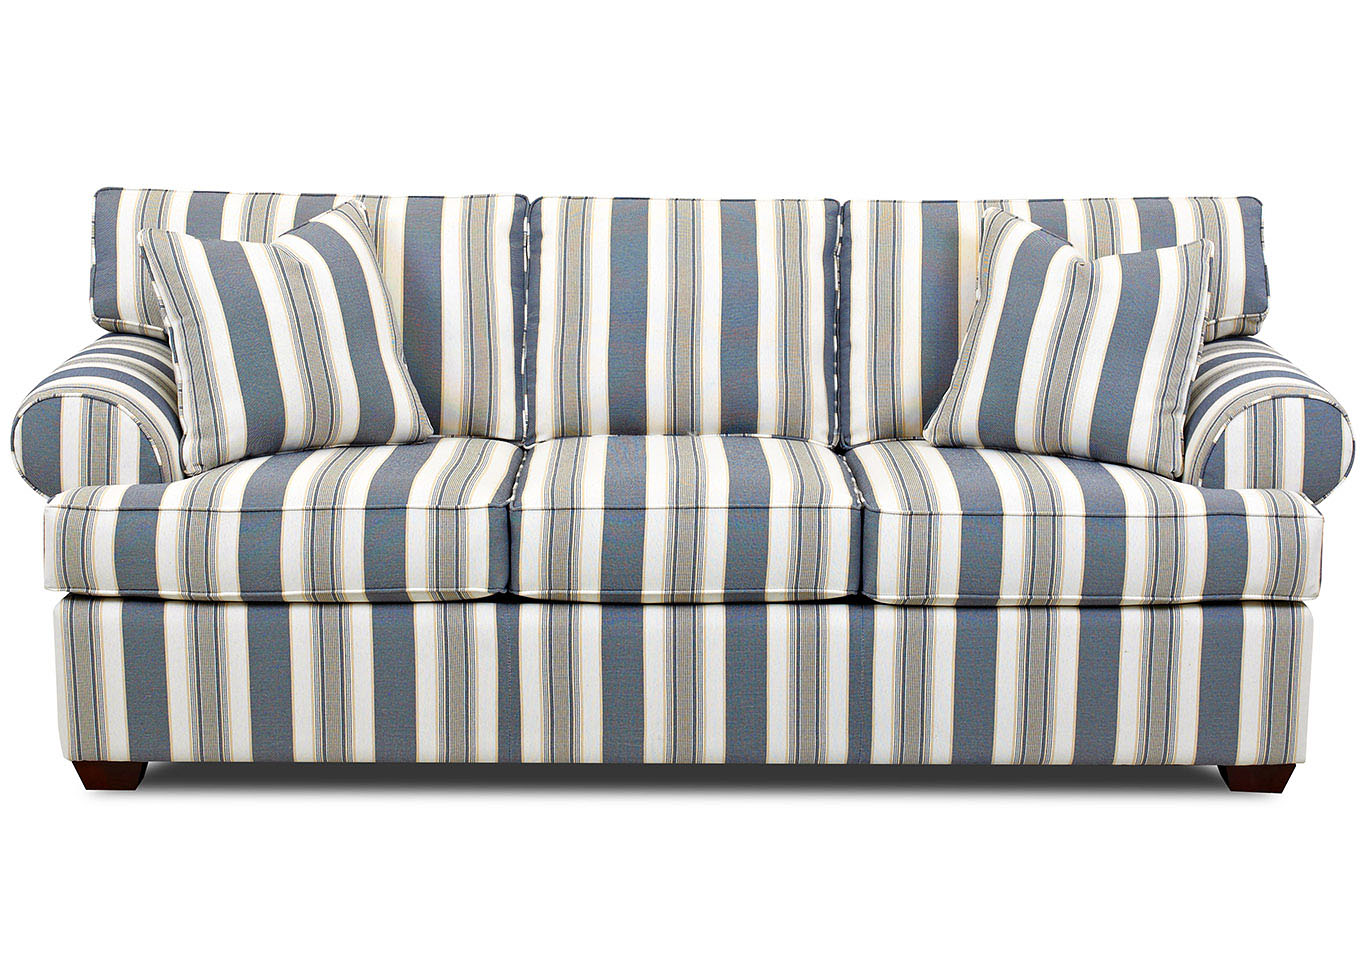 Lady Caymen-Breeze Striped Stationary Fabric Sofa Best Buy Furniture And Mattress